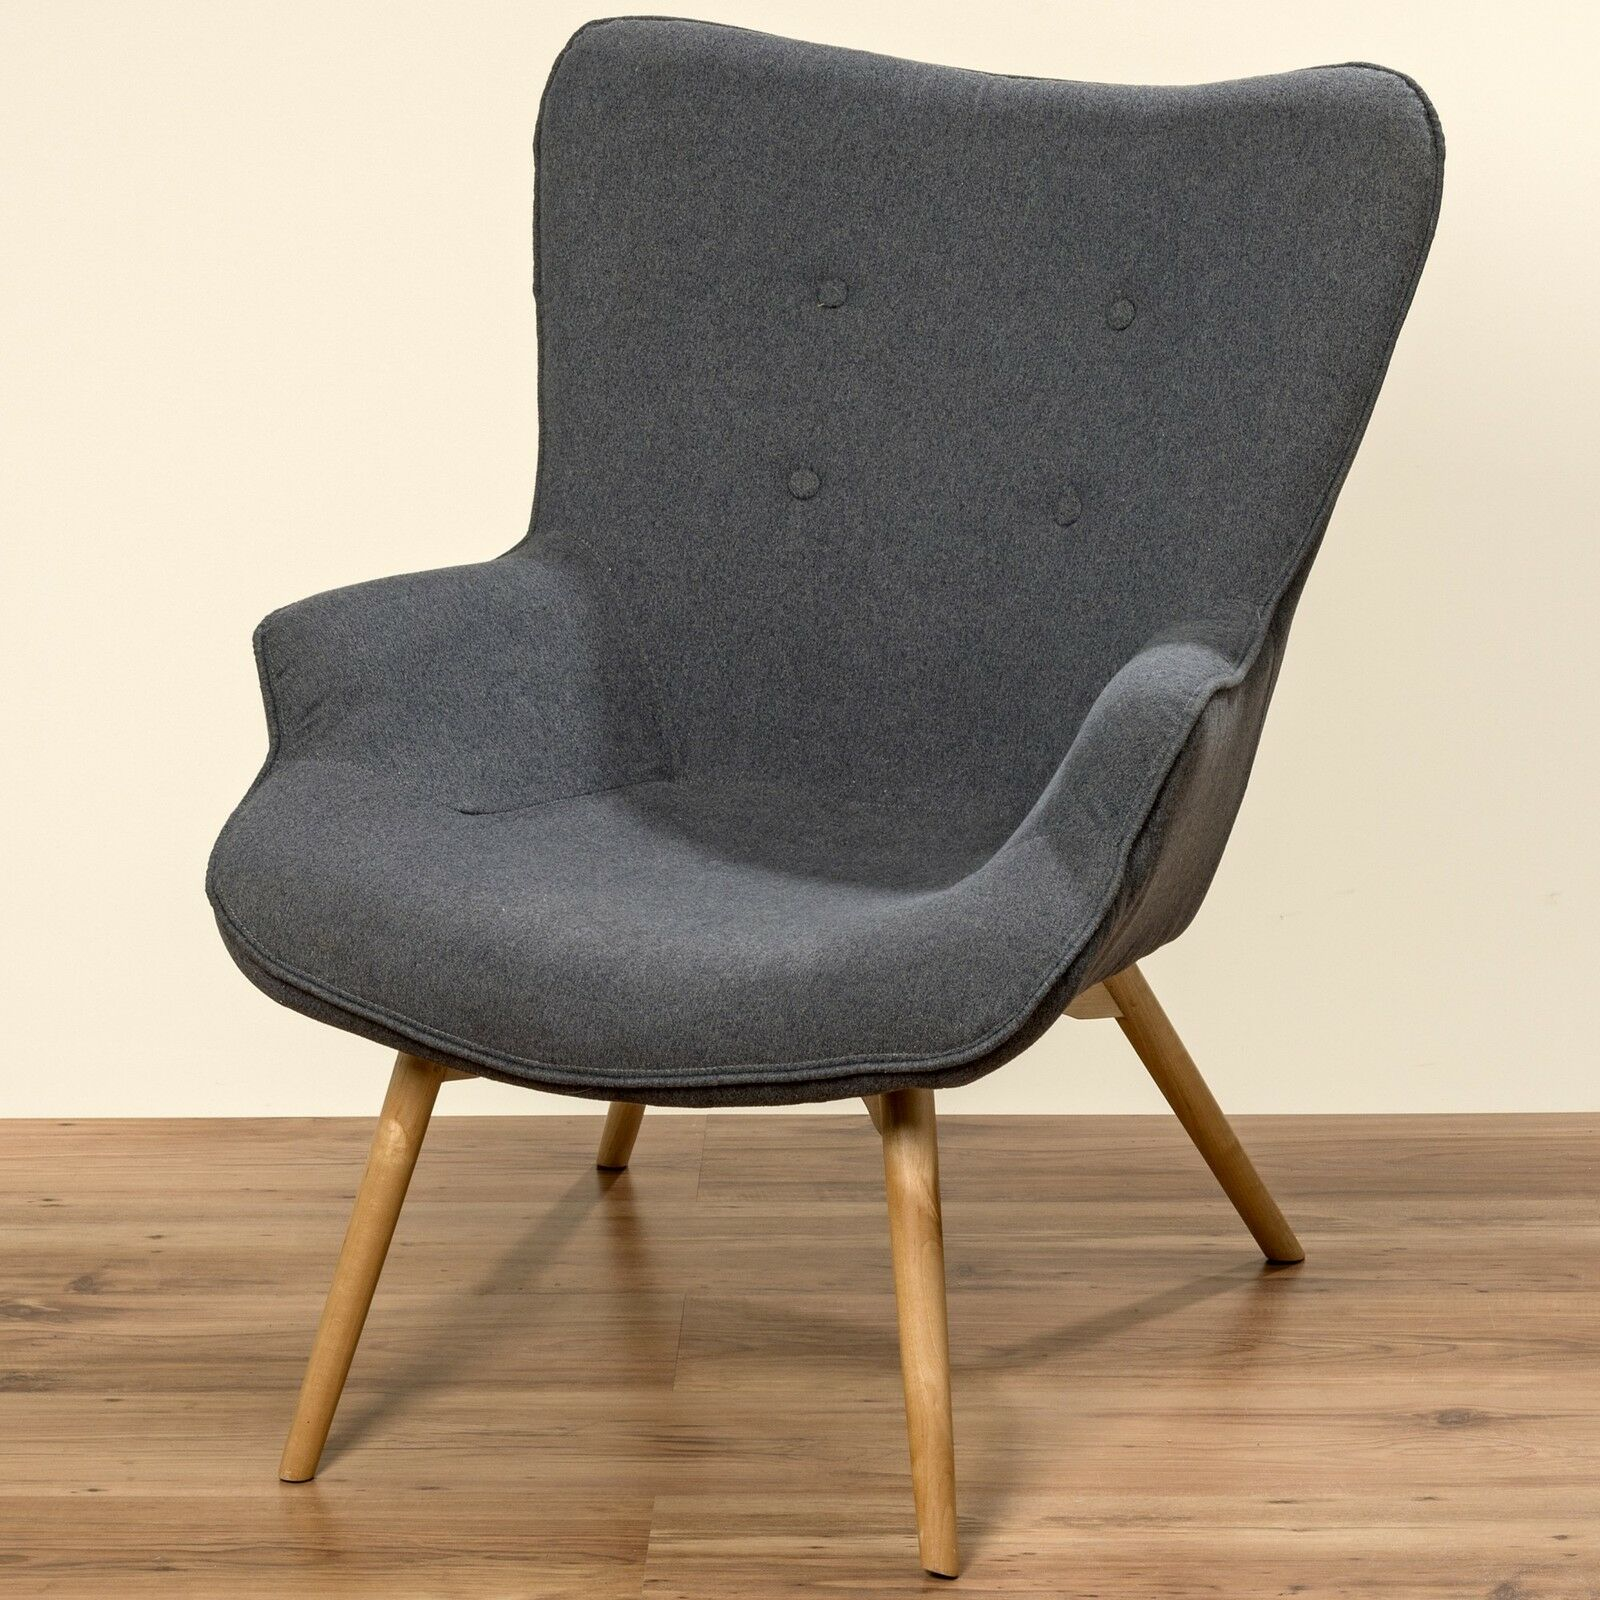 Wood Club Chair Fancy Chair 90cm Grey Fabric Wood Club Chair Lounge Chair Cocktail Chairs